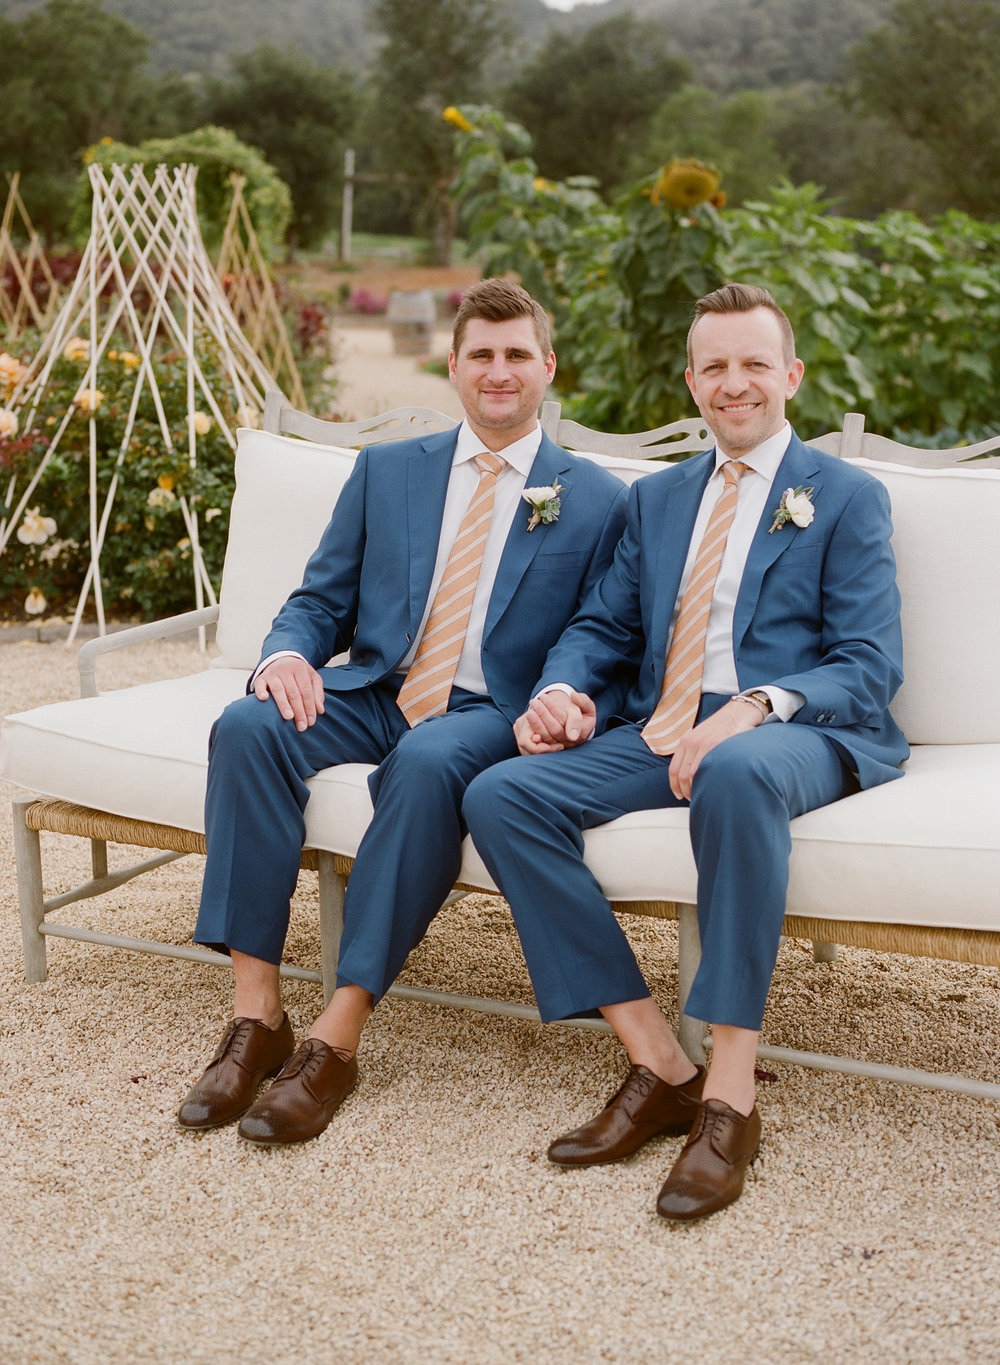 5-grooms-portrait-gay-wedding.jpg